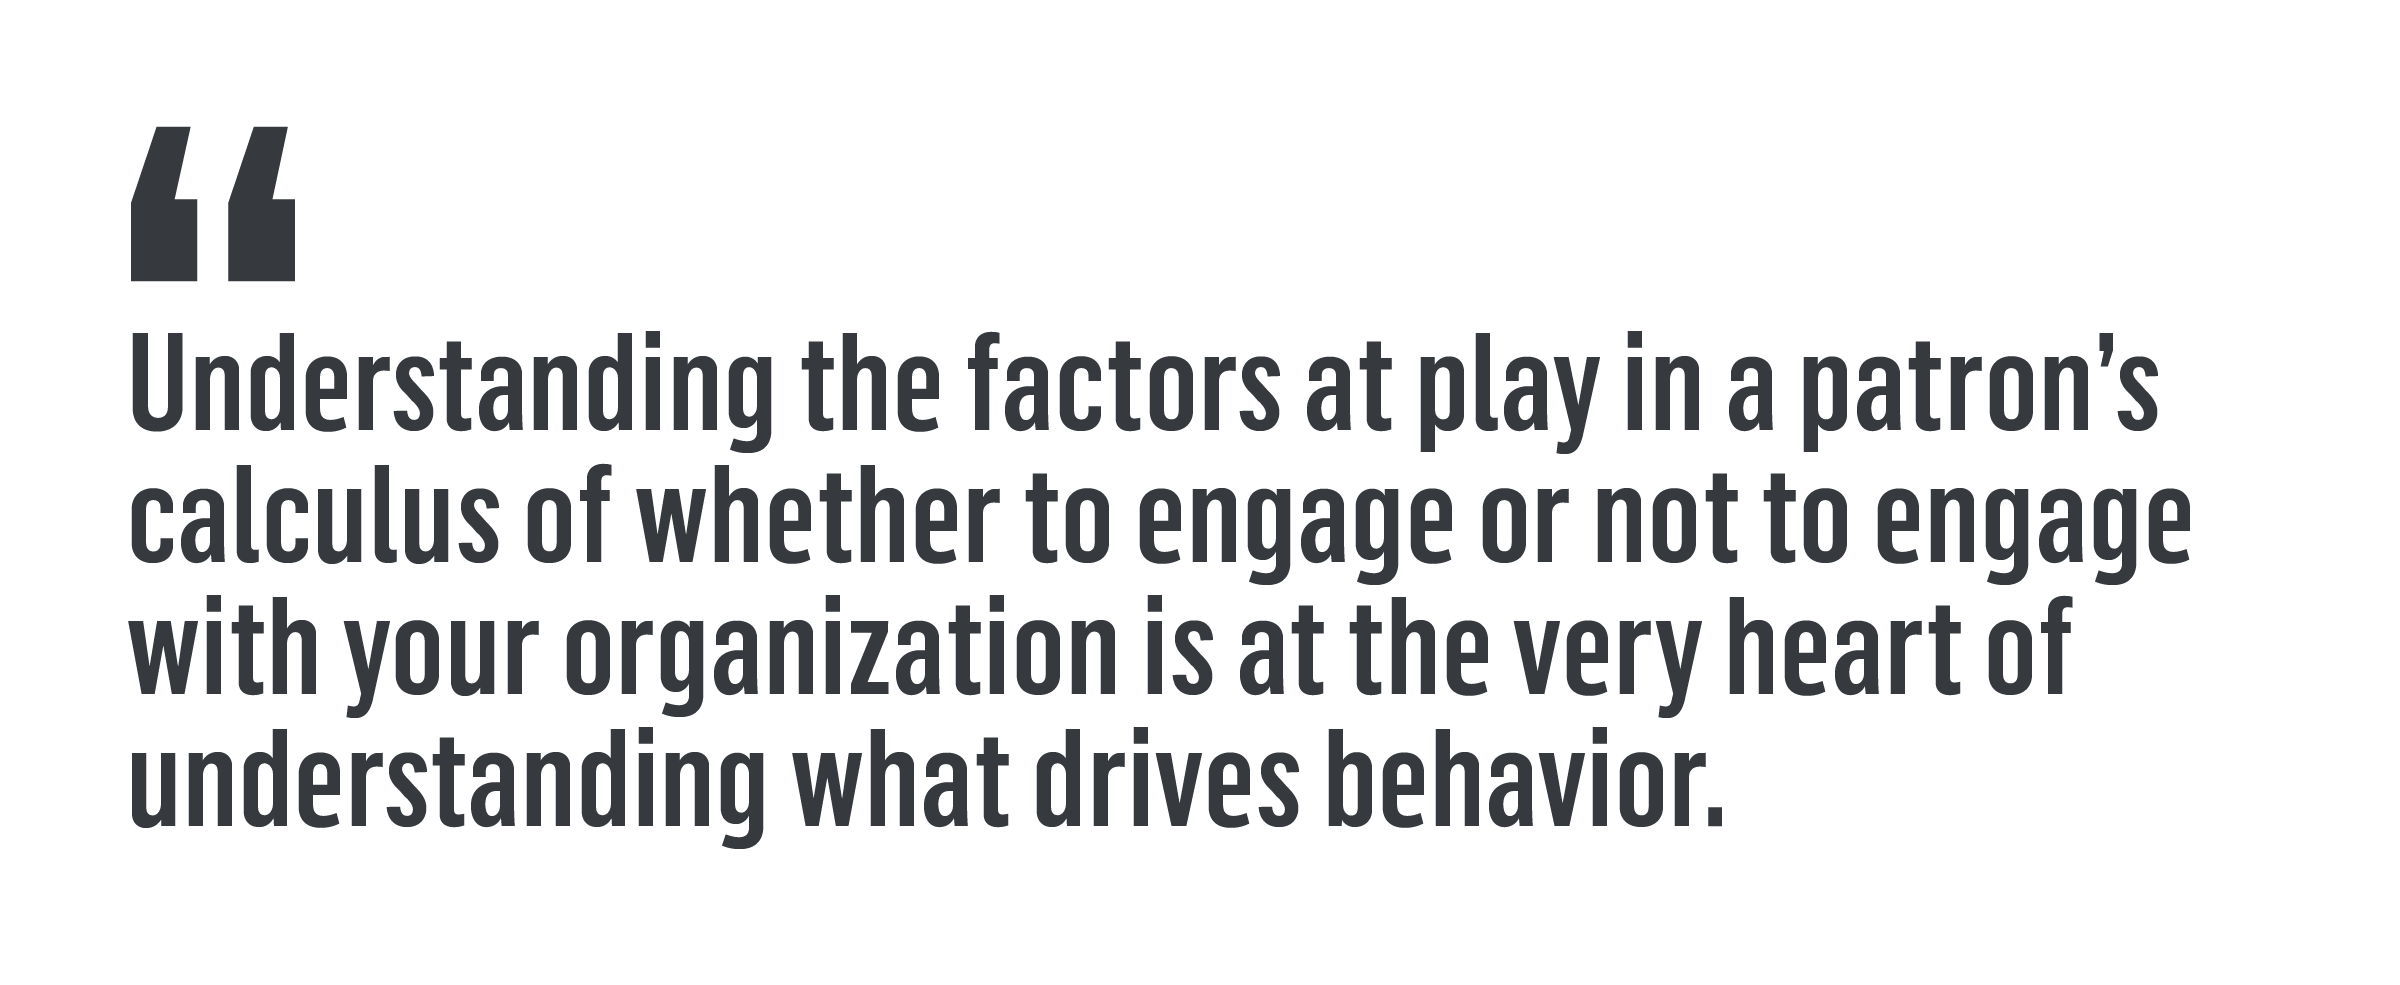 """""""Understanding the factors at play in a patron's calculus of whether to engage or not to engage with your organization is at the very heart of understanding what drives behavior."""""""